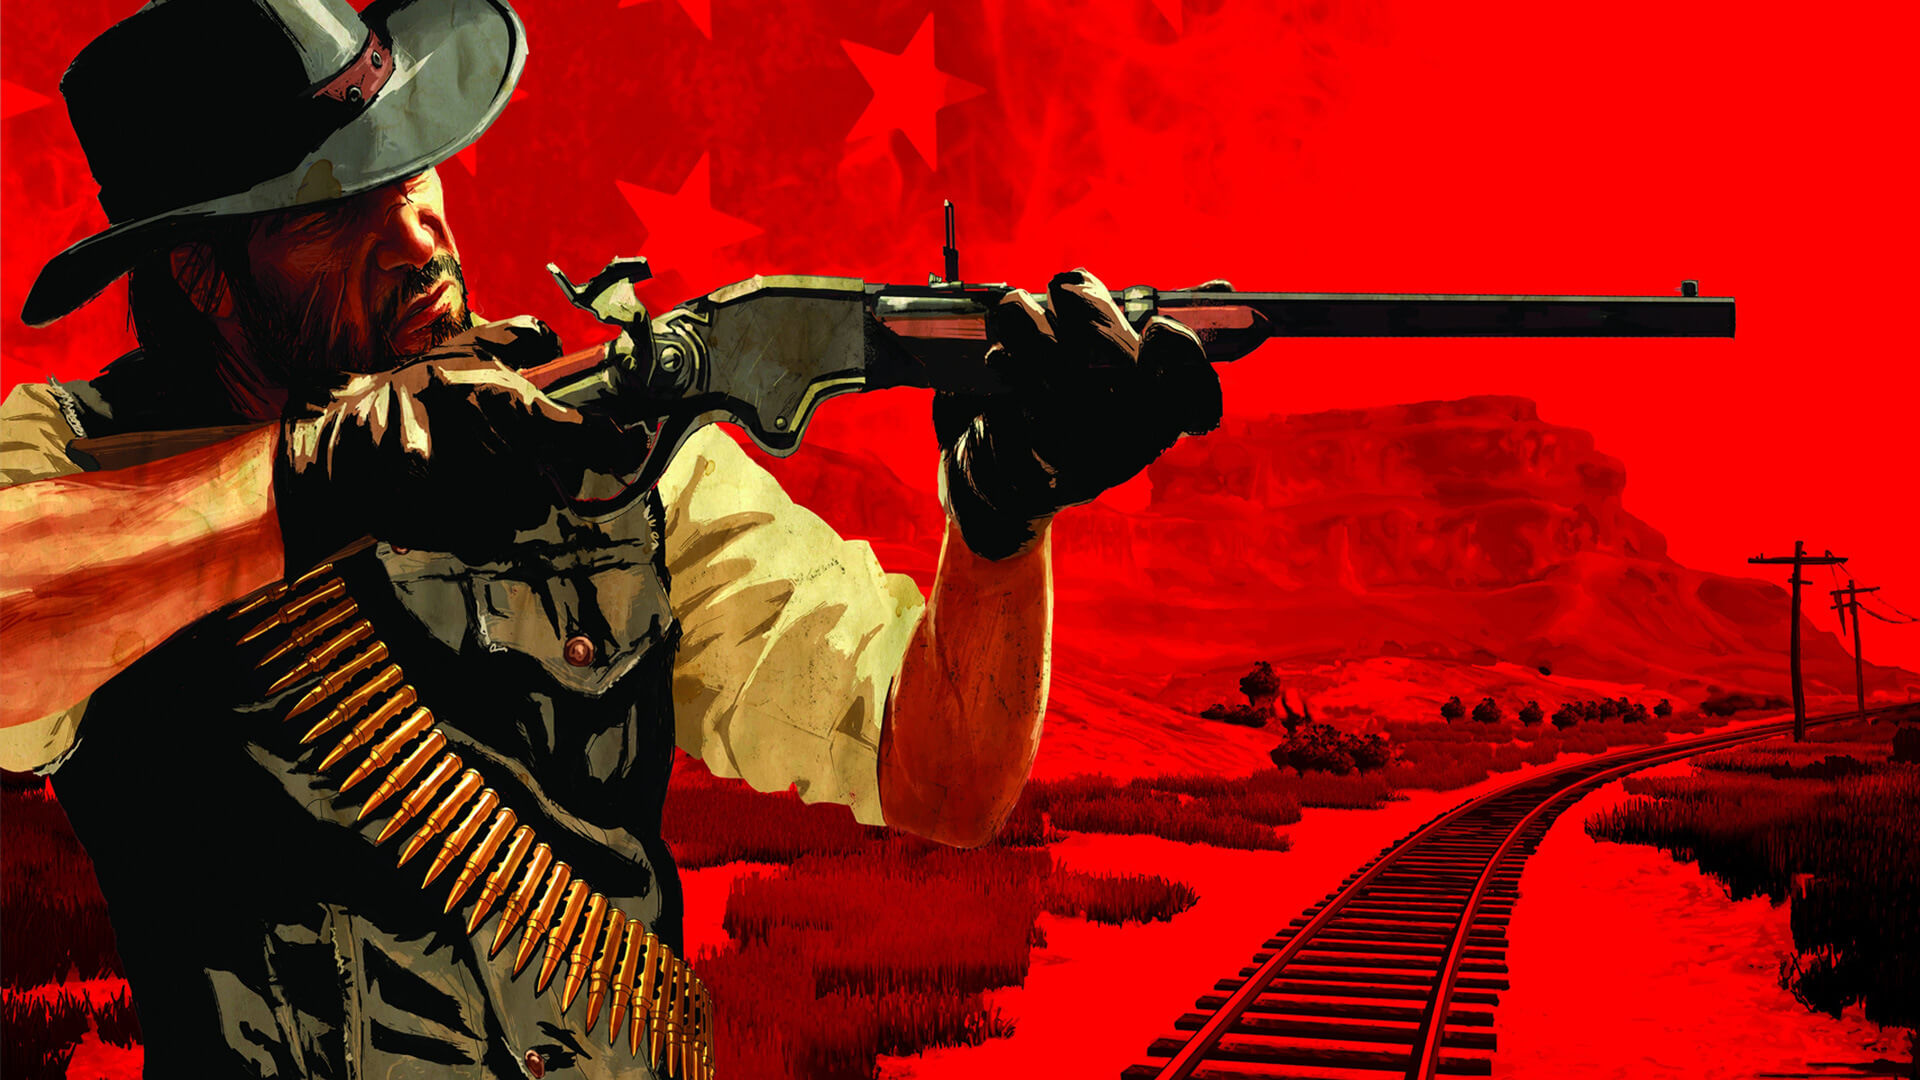 Red Dead Redemption Damned Enhancement overhaul mod has been cancelled, again